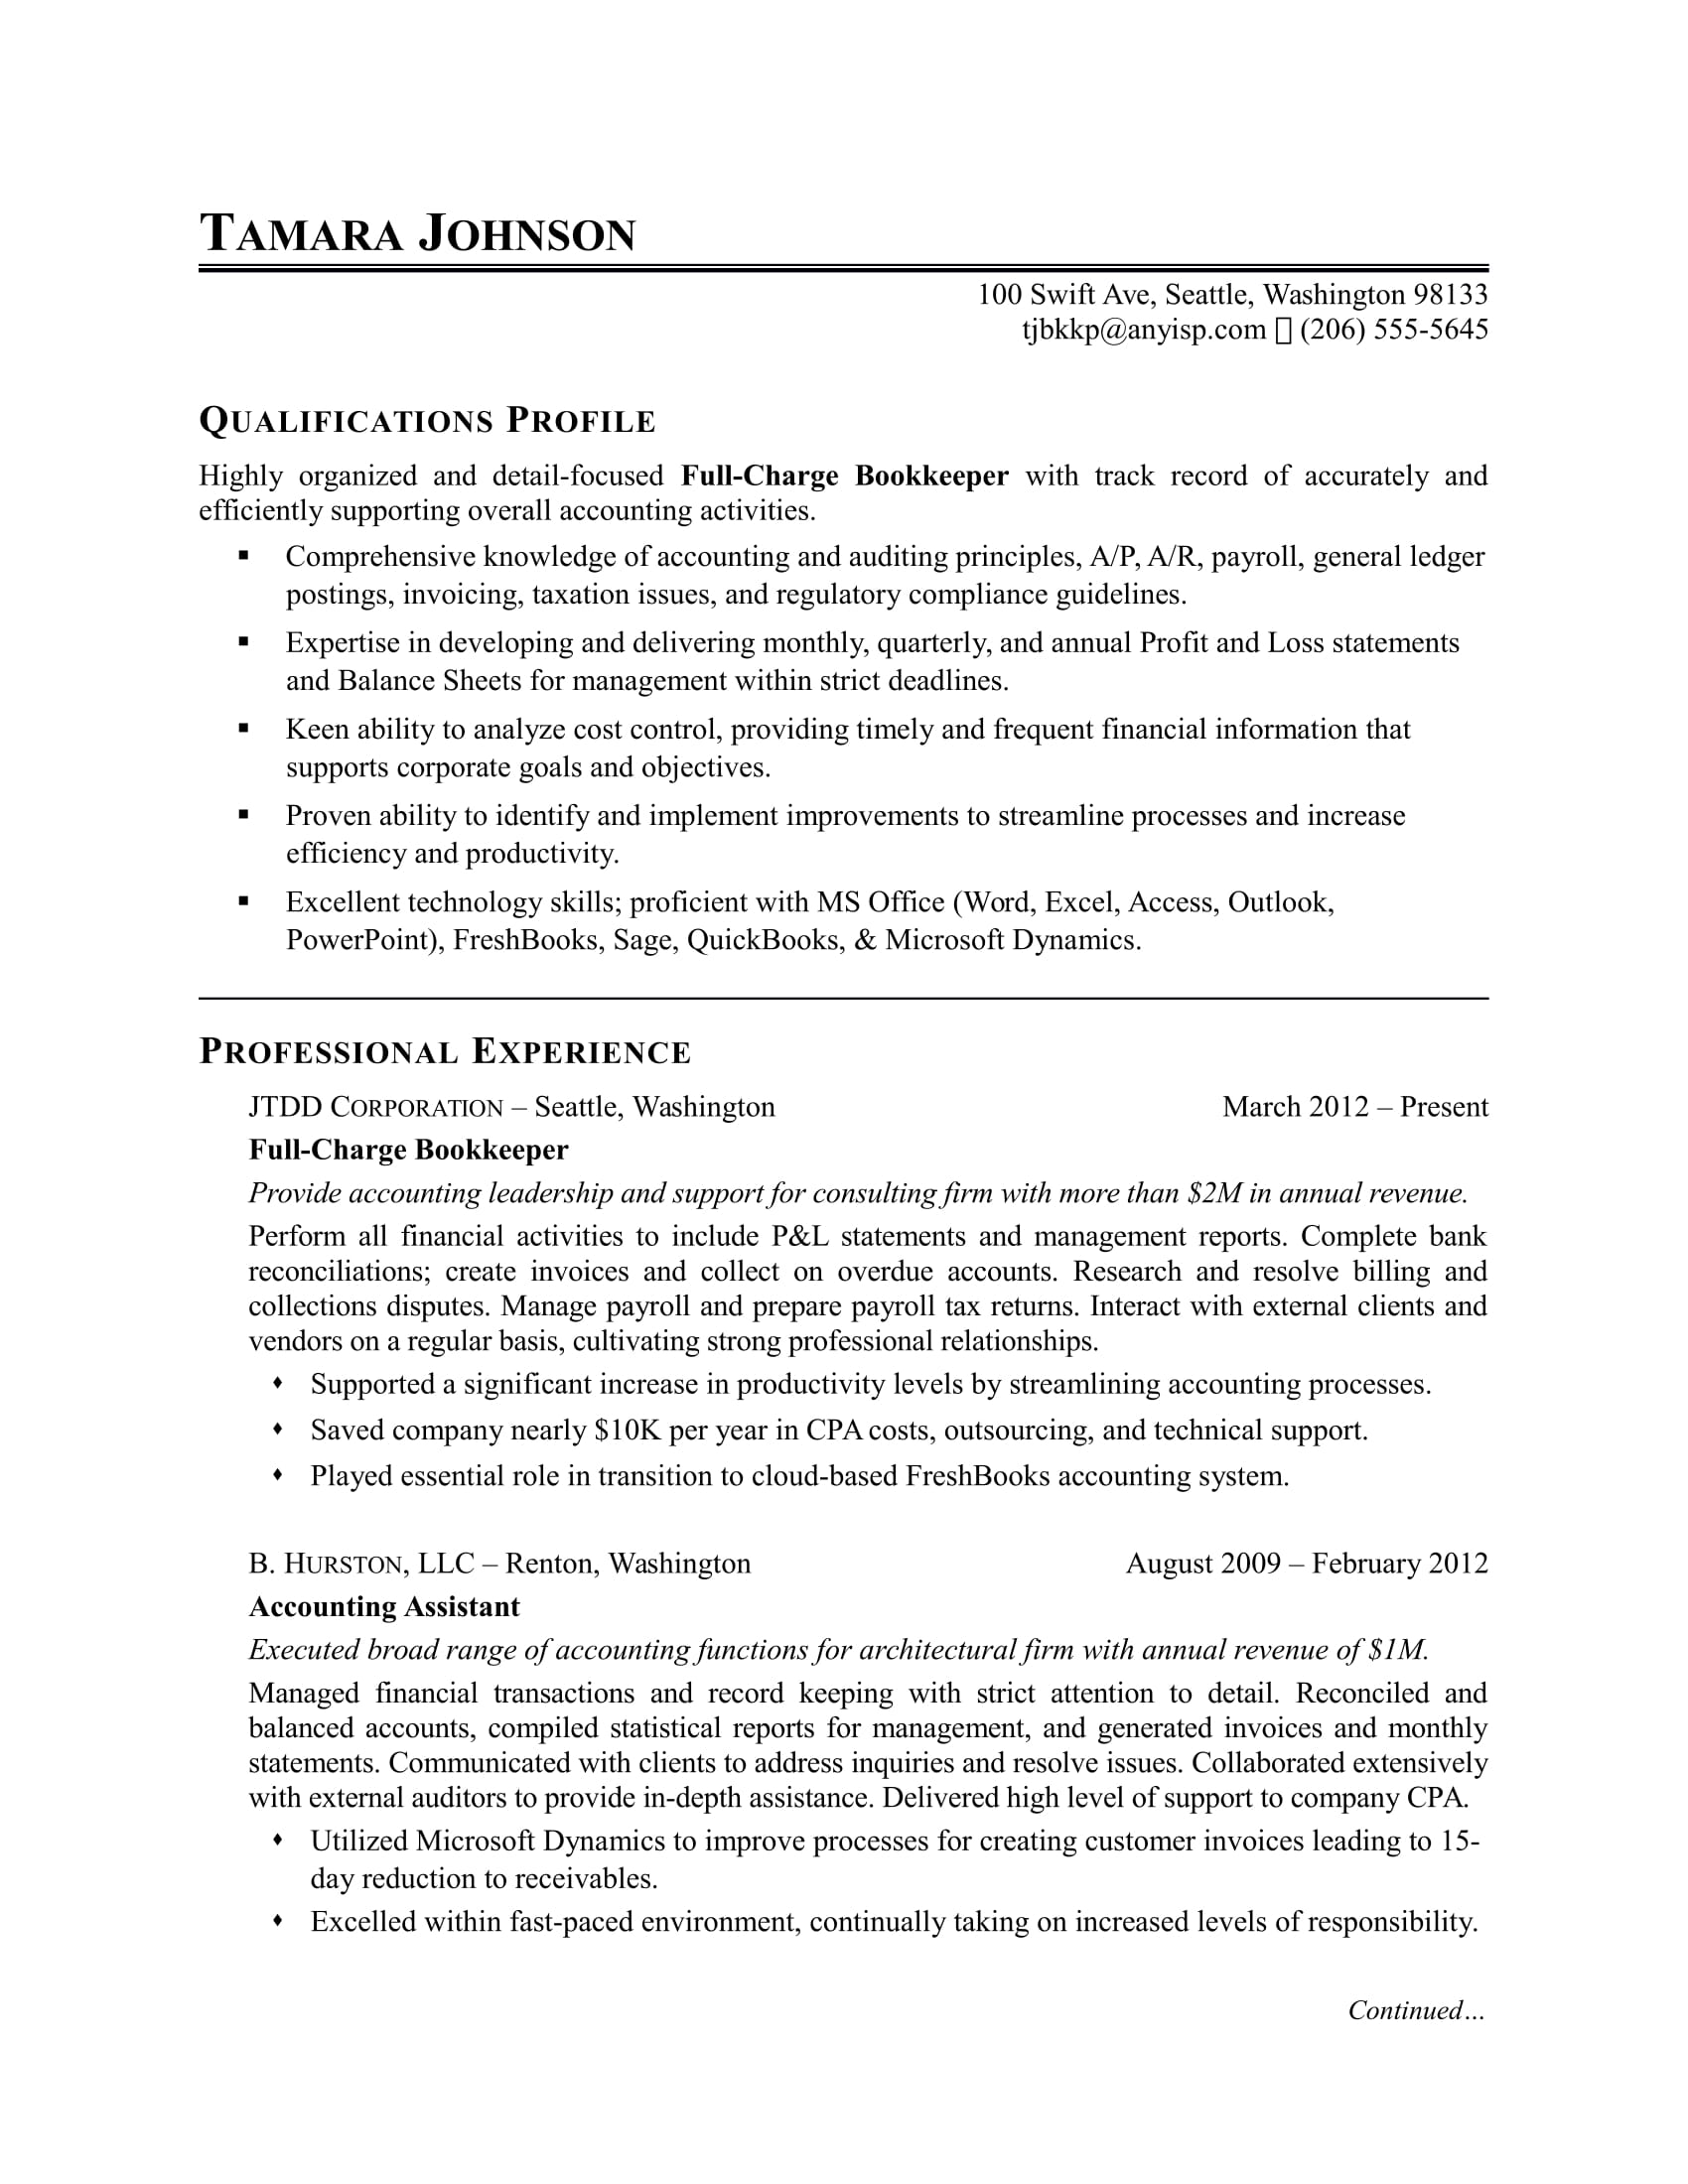 Bookkeeper resume sample monster sample resume for a bookkeeper madrichimfo Gallery